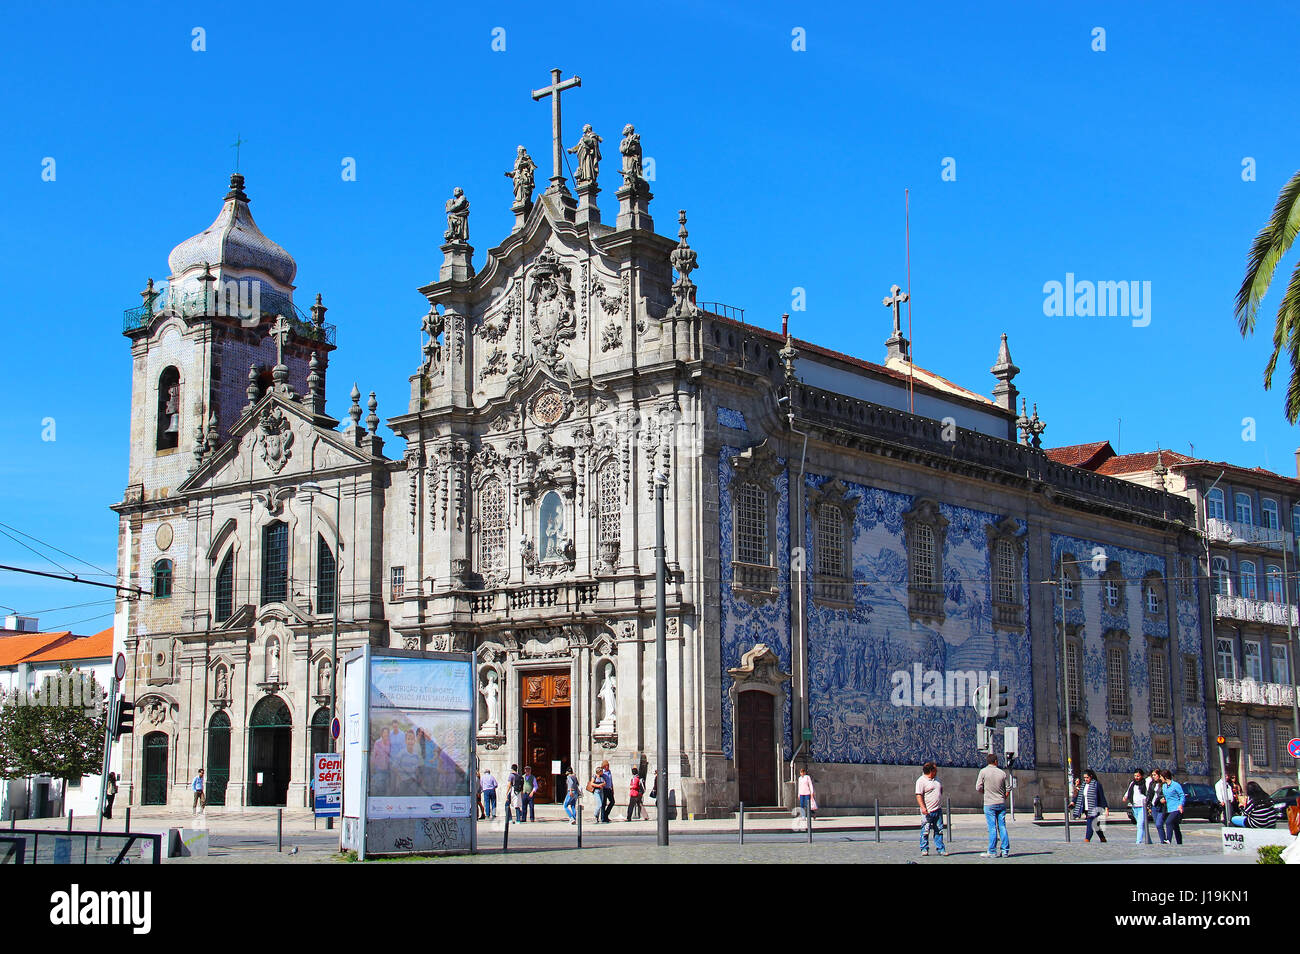 PORTO, PORTUGAL - OCTOBER 8, 2015: Carmelitas and Carmo Churches connected with each other and decorated with blue - Stock Image